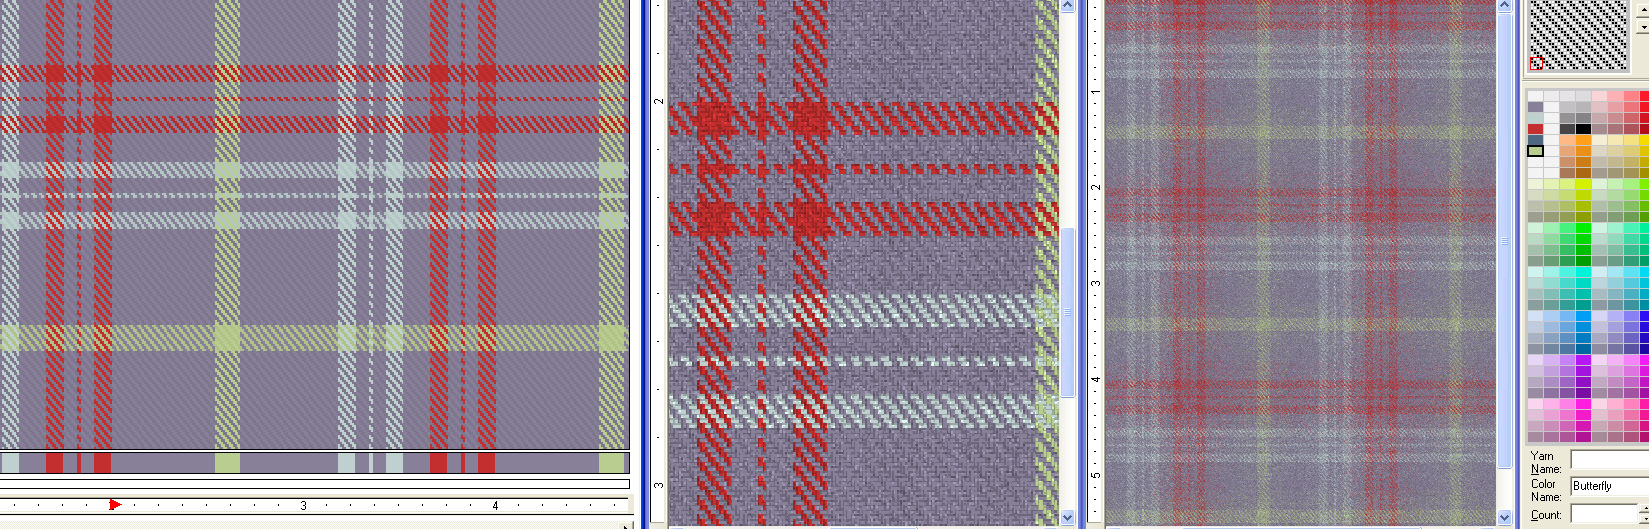 screen shot of plaid patterns showing how to apply yarn shading and texture effects for virtual woven samples